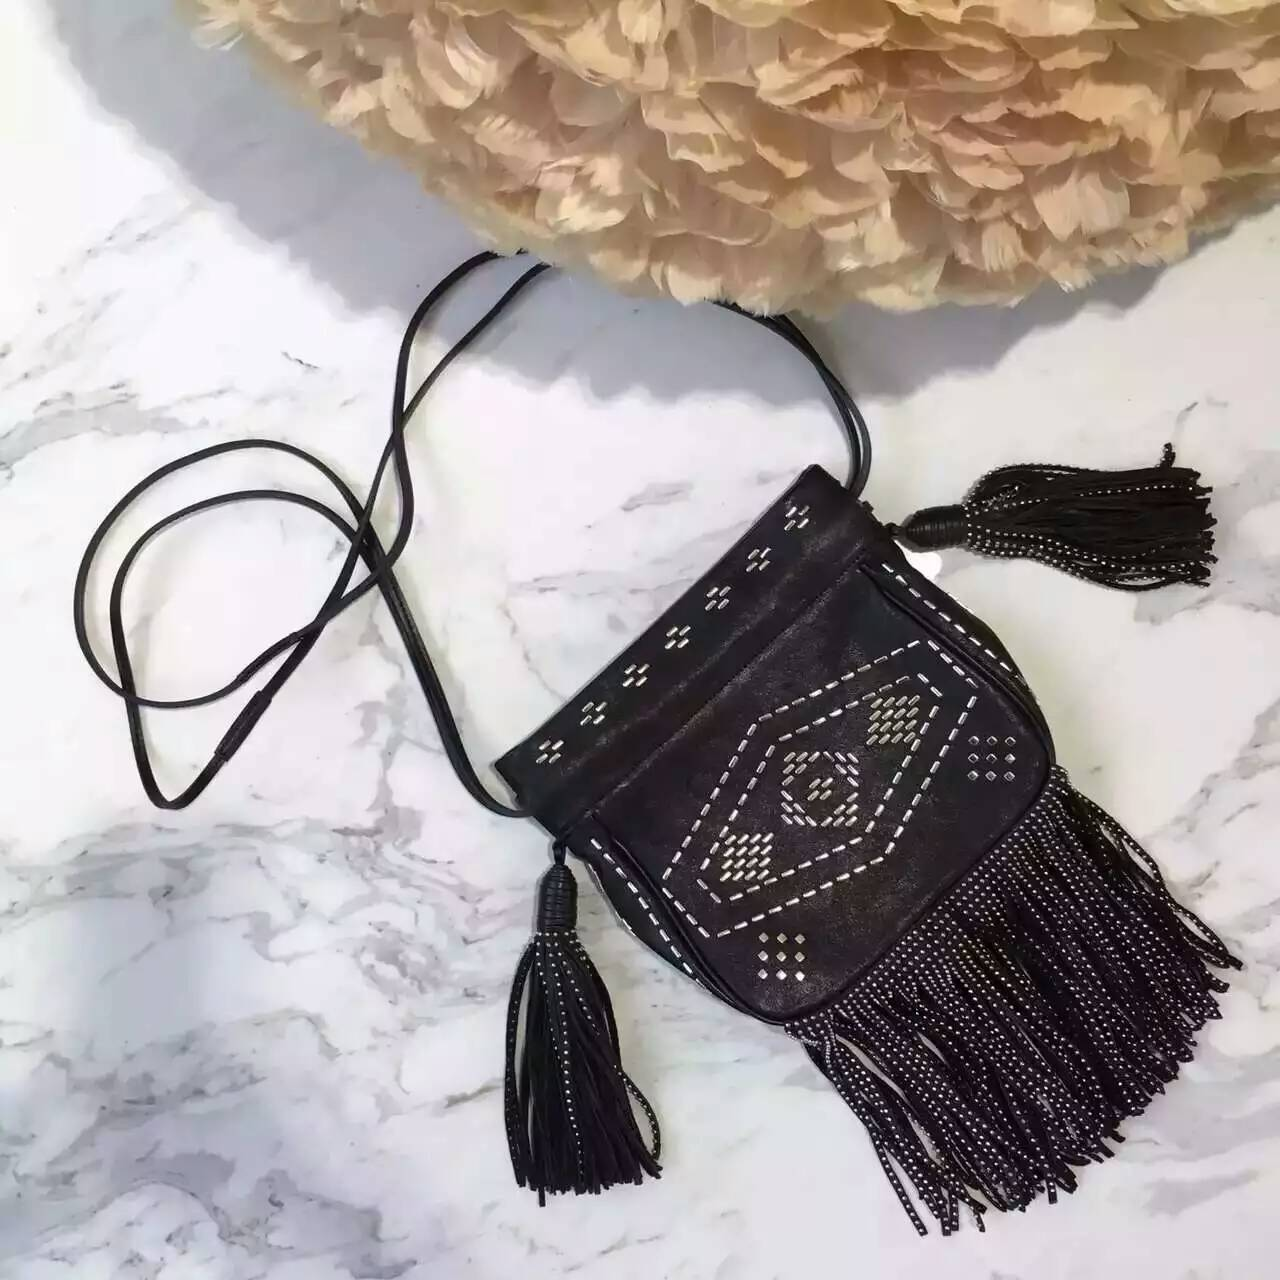 Limited Edition!2016 New Saint Laurent Bag Cheap Sale-Saint Laurent Small Helena Fringed Bucket Bag in Black Leather and Oxidized Nickel